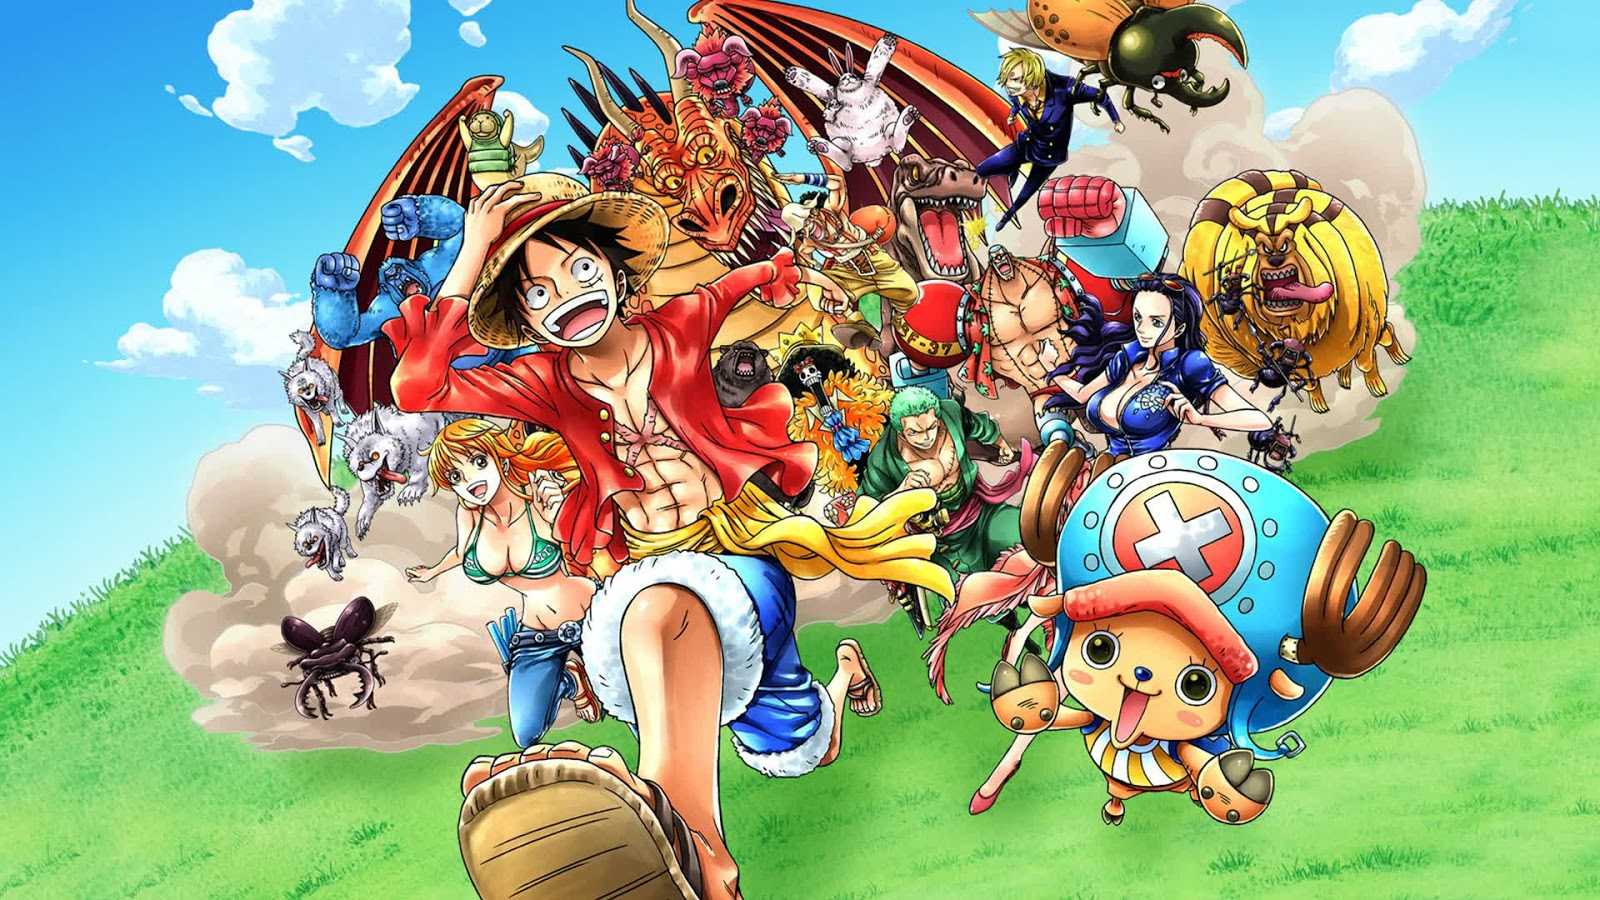 Free download One Piece HD Wallpaper Pack Manga Council 1600x900 for your Desktop, Mobile ...